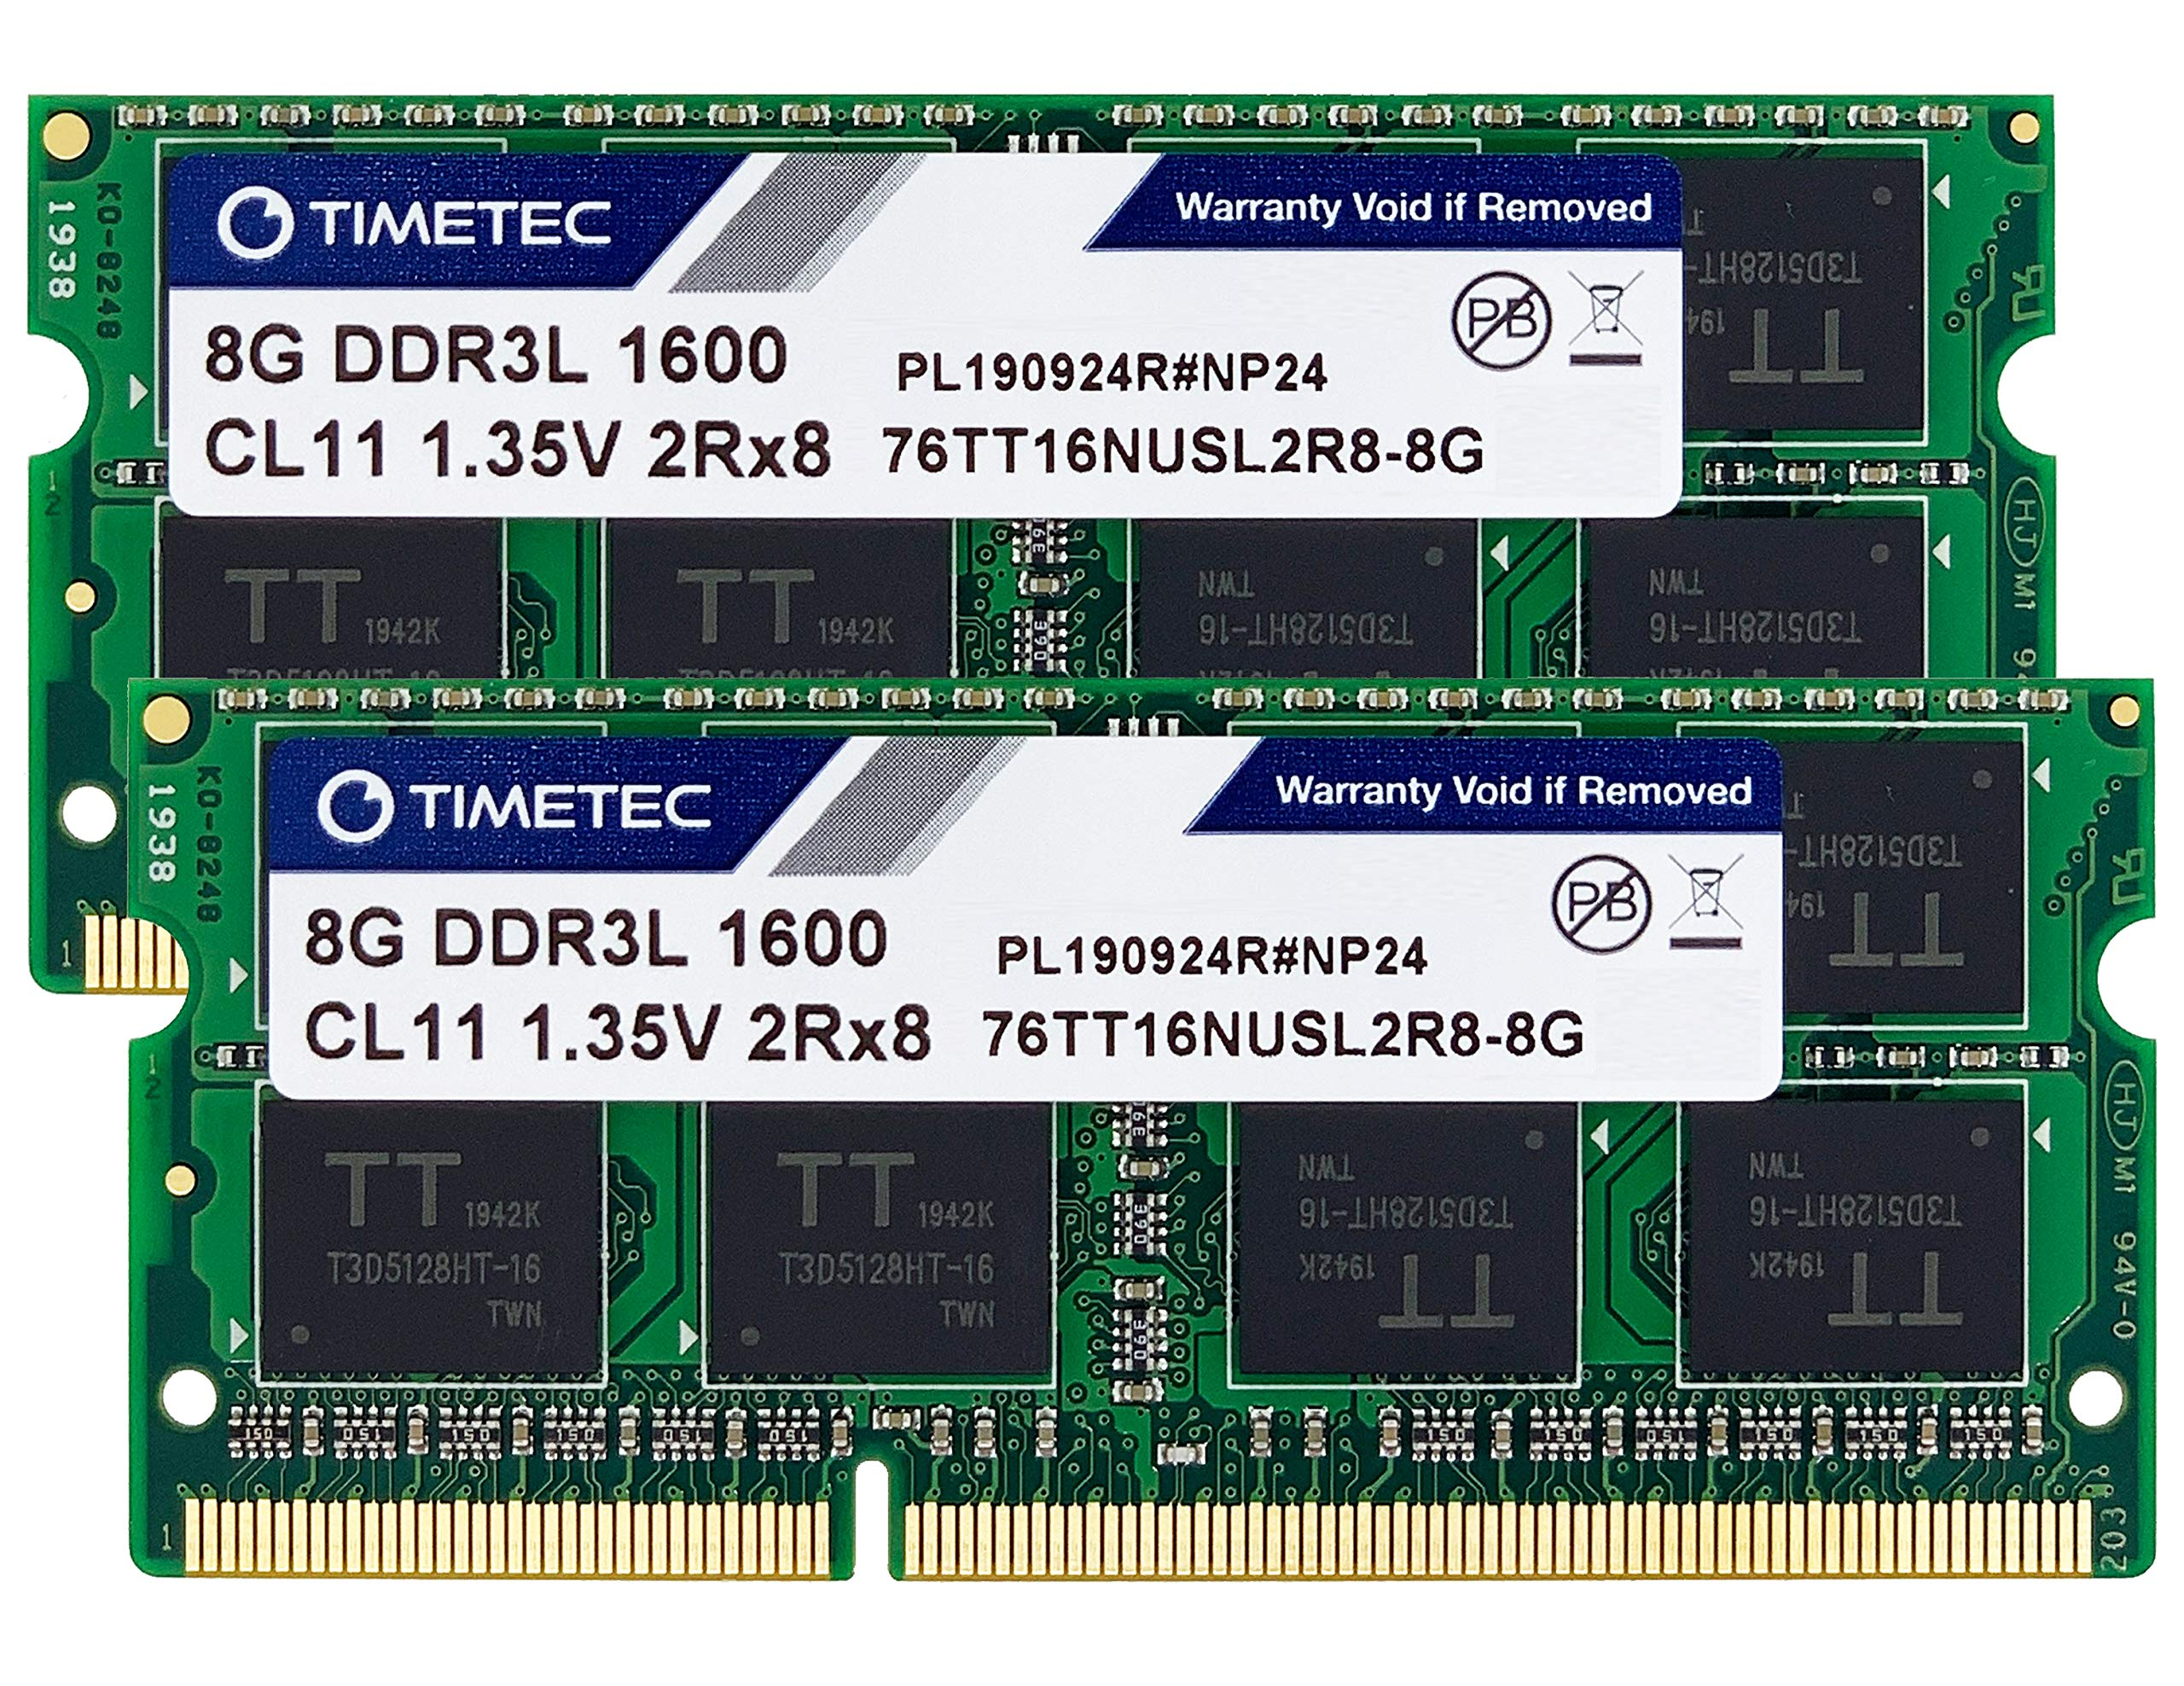 Timetec 16GB KIT(2x8GB) DDR3L / DDR3 1600MHz PC3L-12800 / PC3-12800 Non-ECC Unbuffered 1.35V / 1.5V CL11 2Rx8 Dual Rank 204 Pin SODIMM Laptop Notebook Computer Memory RAM Module Upgrade